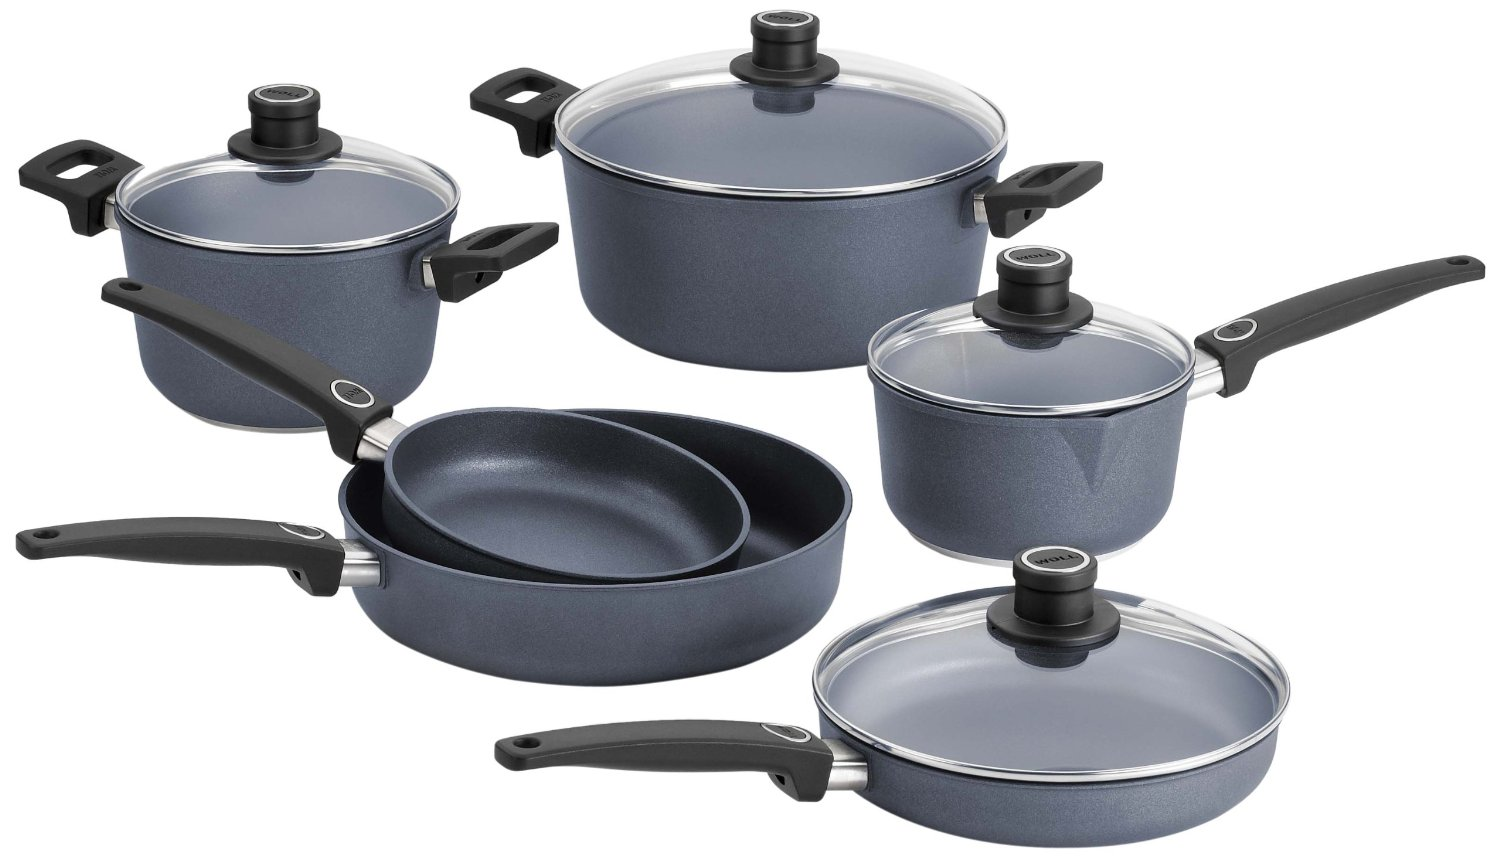 Woll Diamond Plus Cookware Review Expensive Nonstick Set